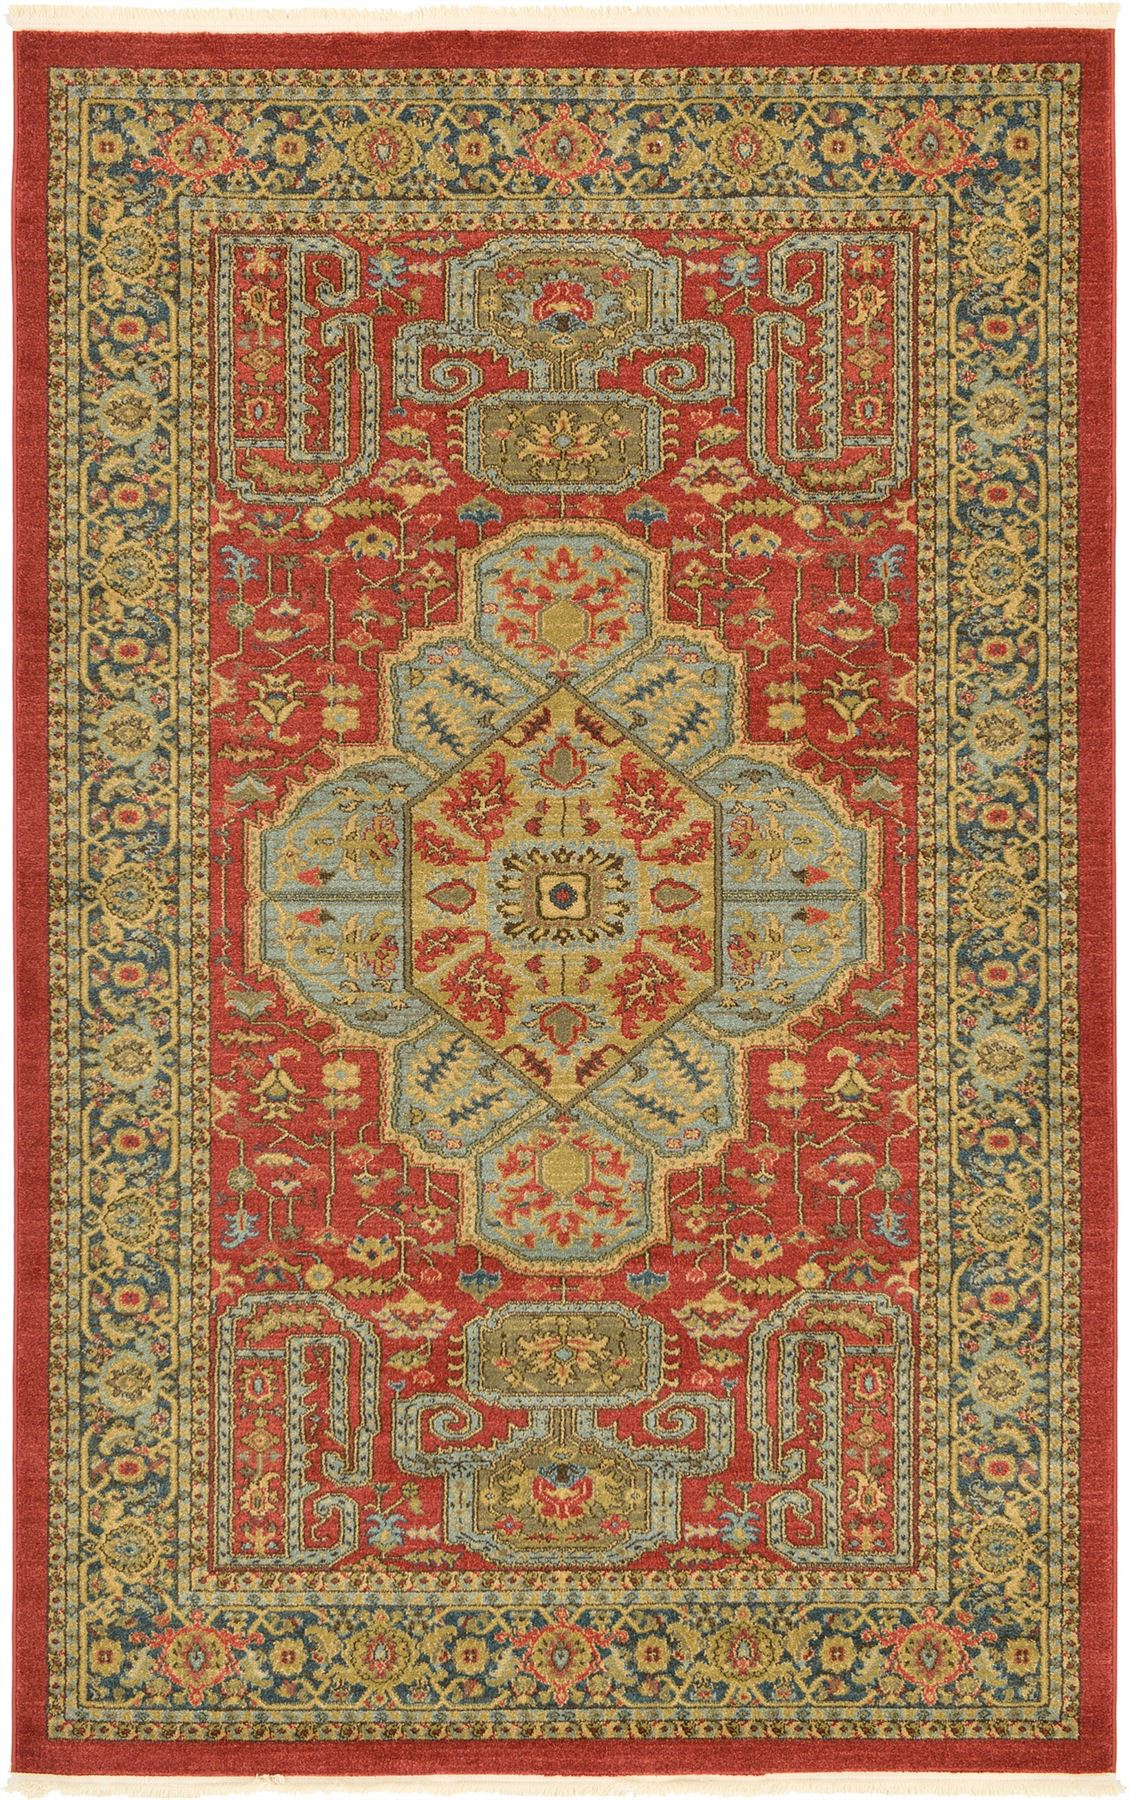 Oriental floor decor large rugs area rugs carpet flooring for Rug on carpet decorating